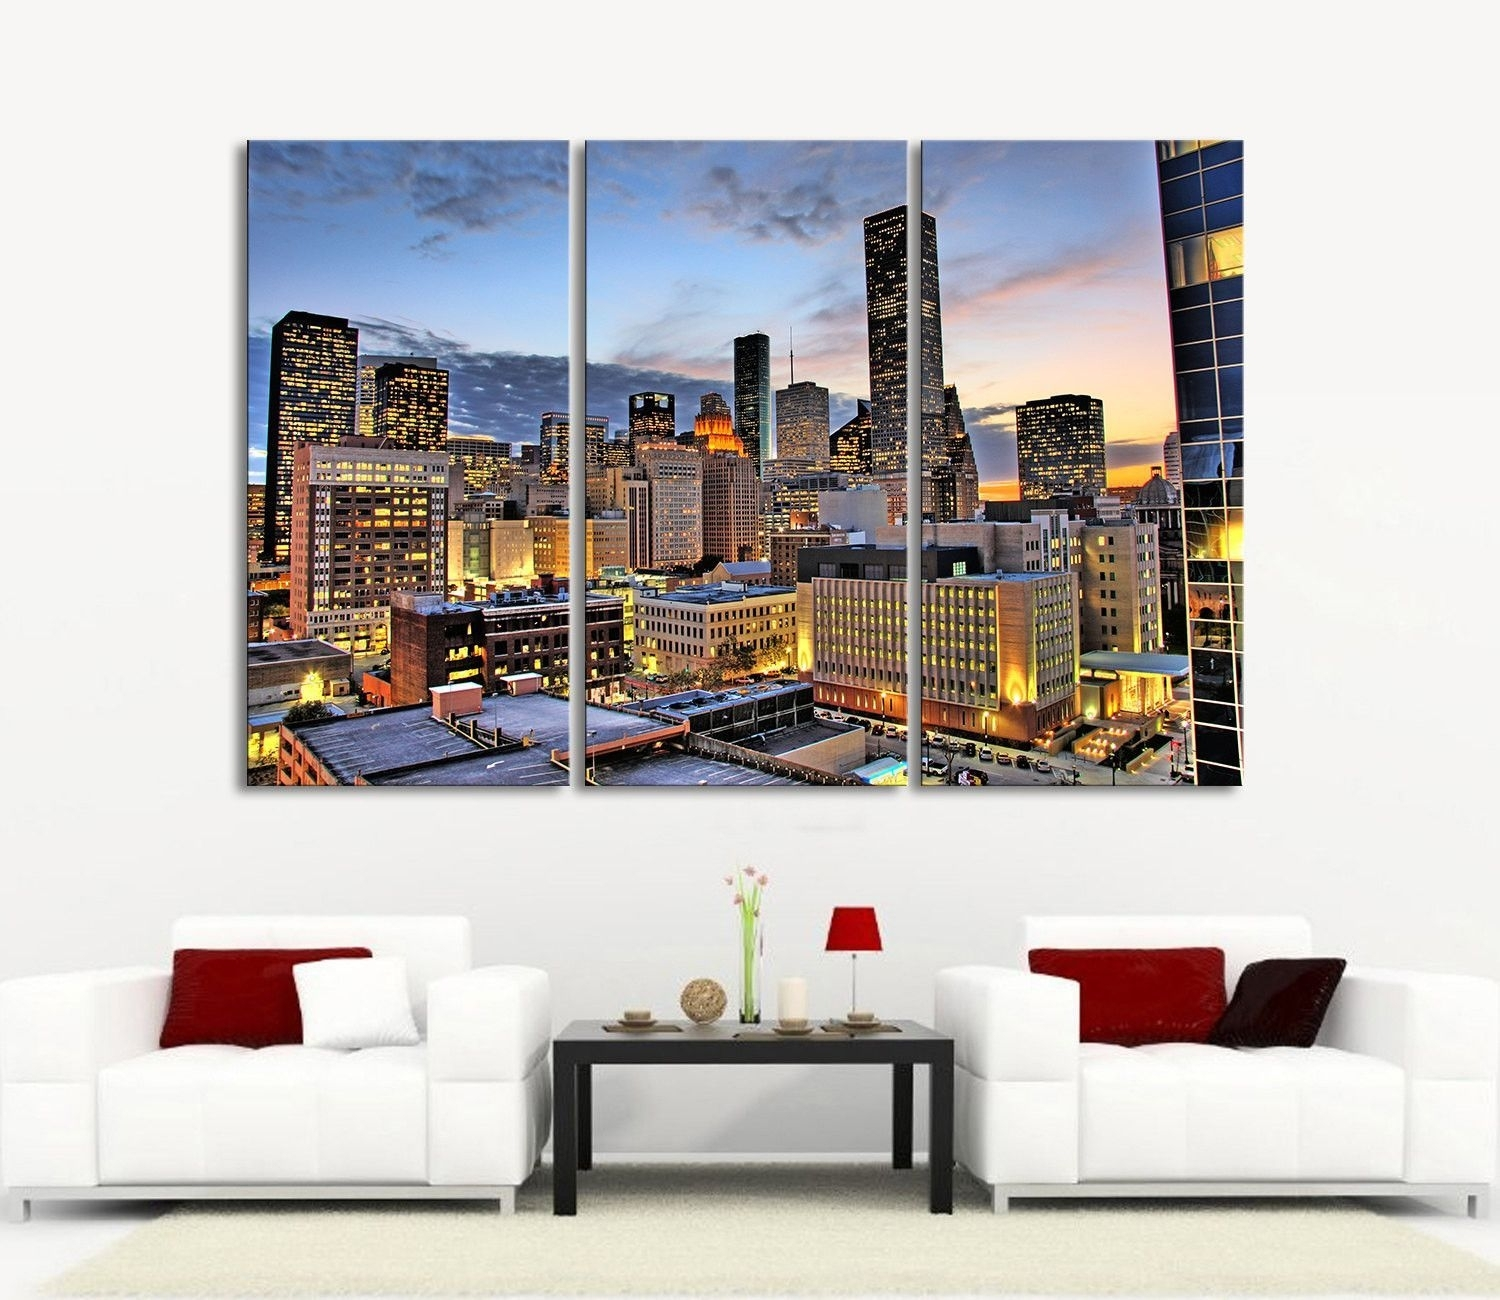 Large Wall Art Canvas Prints Houston Night Landscape Canvas Print intended for Most Recent Houston Canvas Wall Art